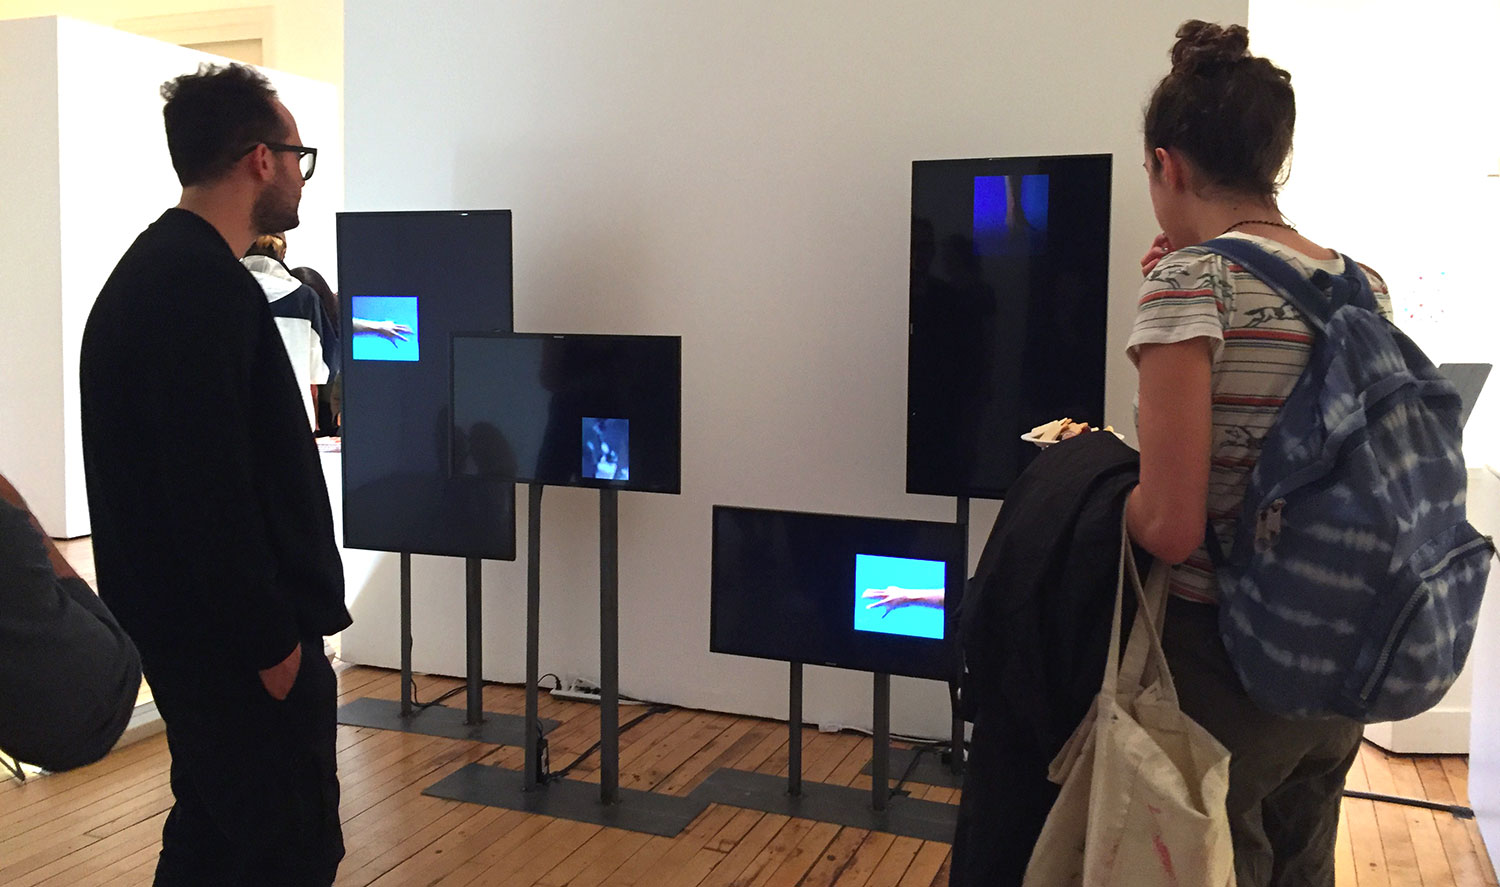 Installation view of TV monitors and two people looking at them